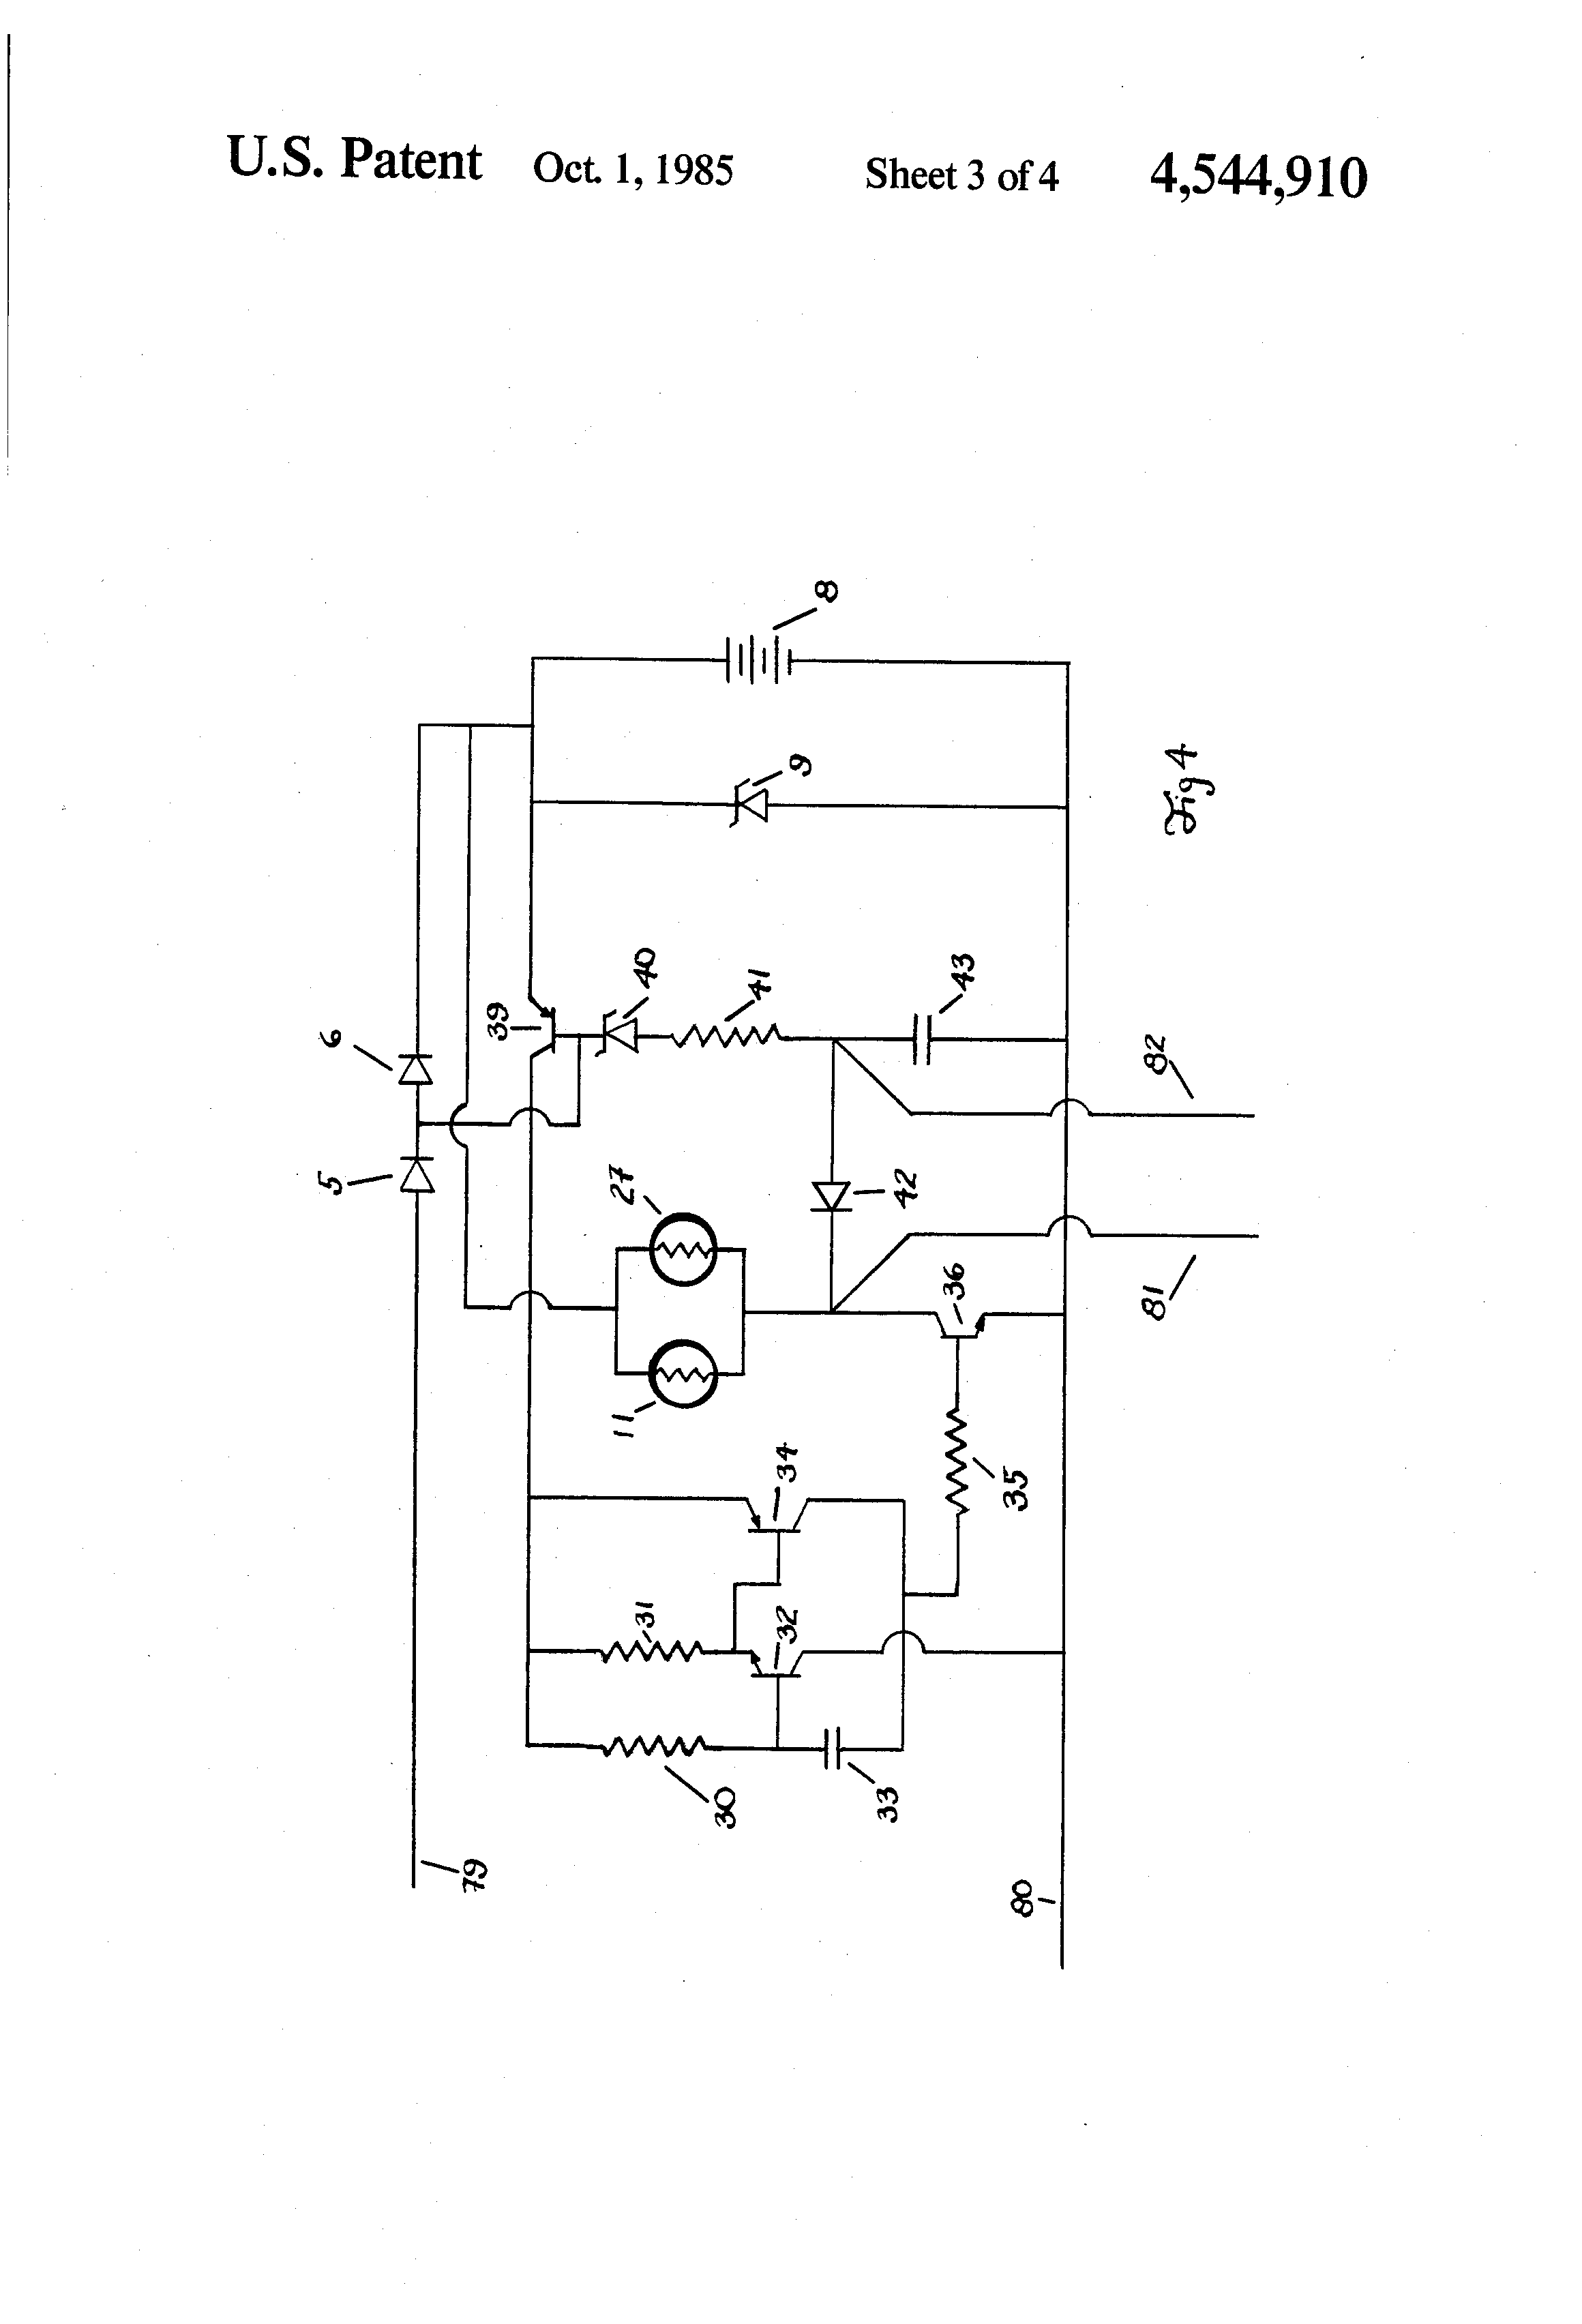 Mains Power Failure Alarm Circuit Question About Wiring Diagram Patent Us4544910 Exit Sign Lamp Flashing System With Self Checking Provisions Google Patents Supply Outage